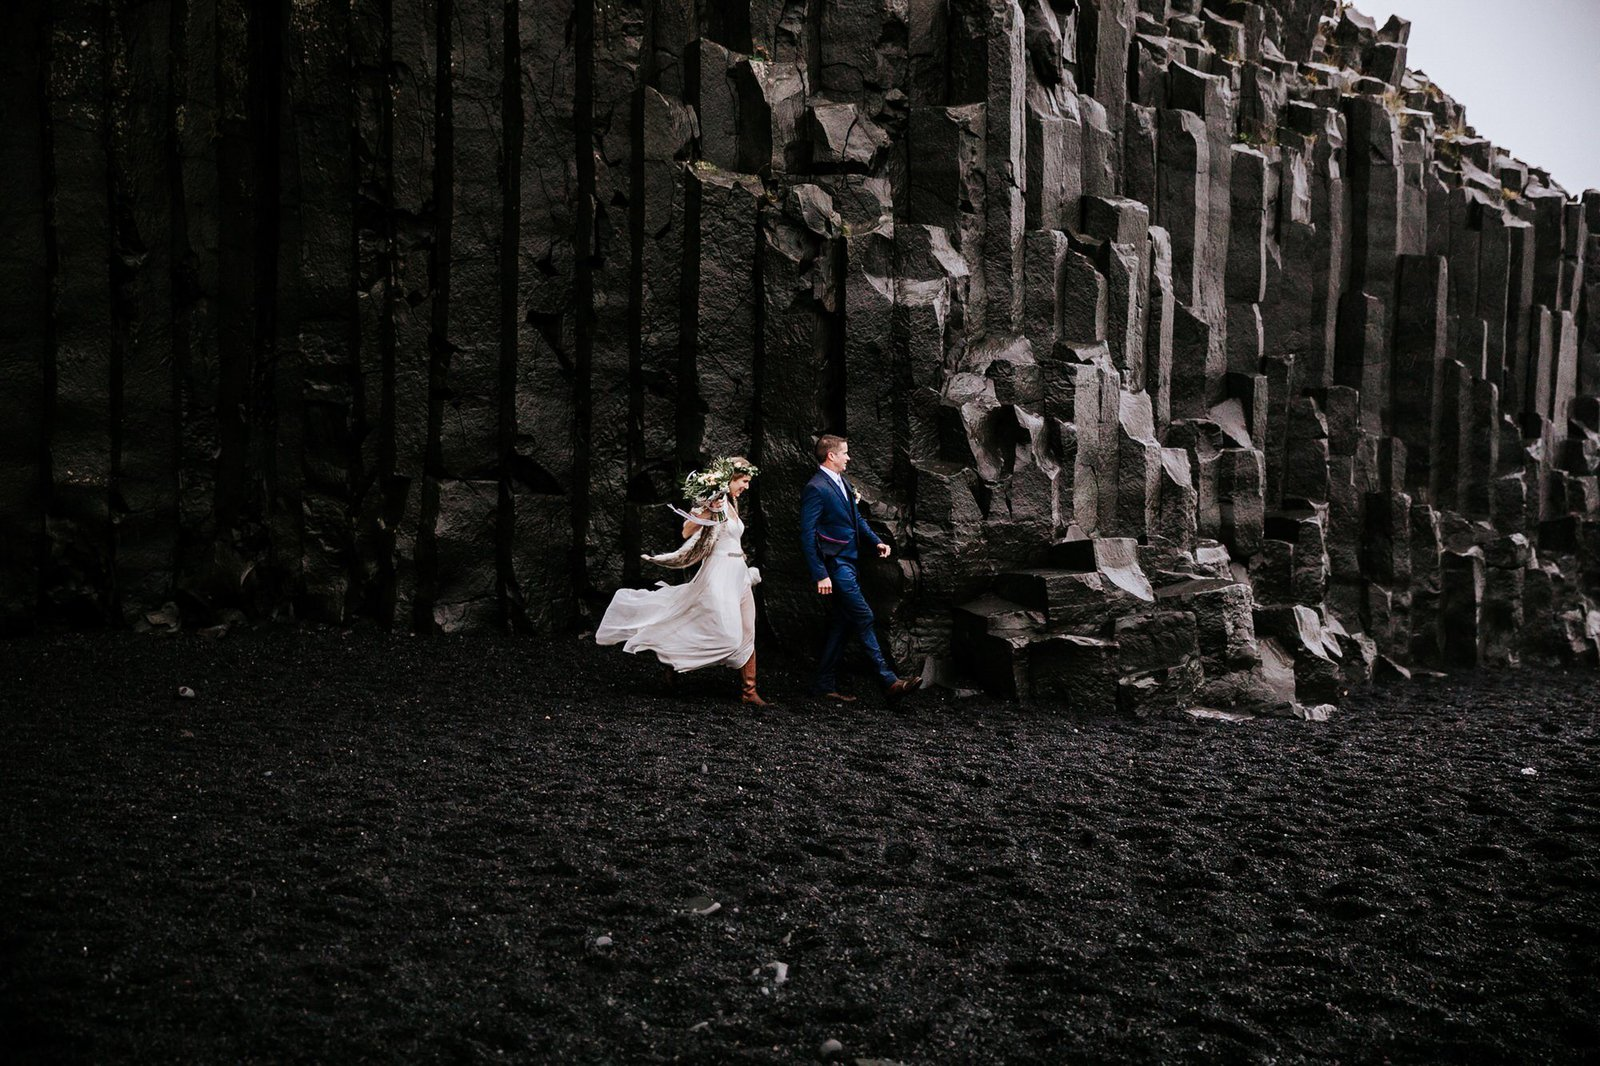 Bride and groom at Reynisfjara beach.